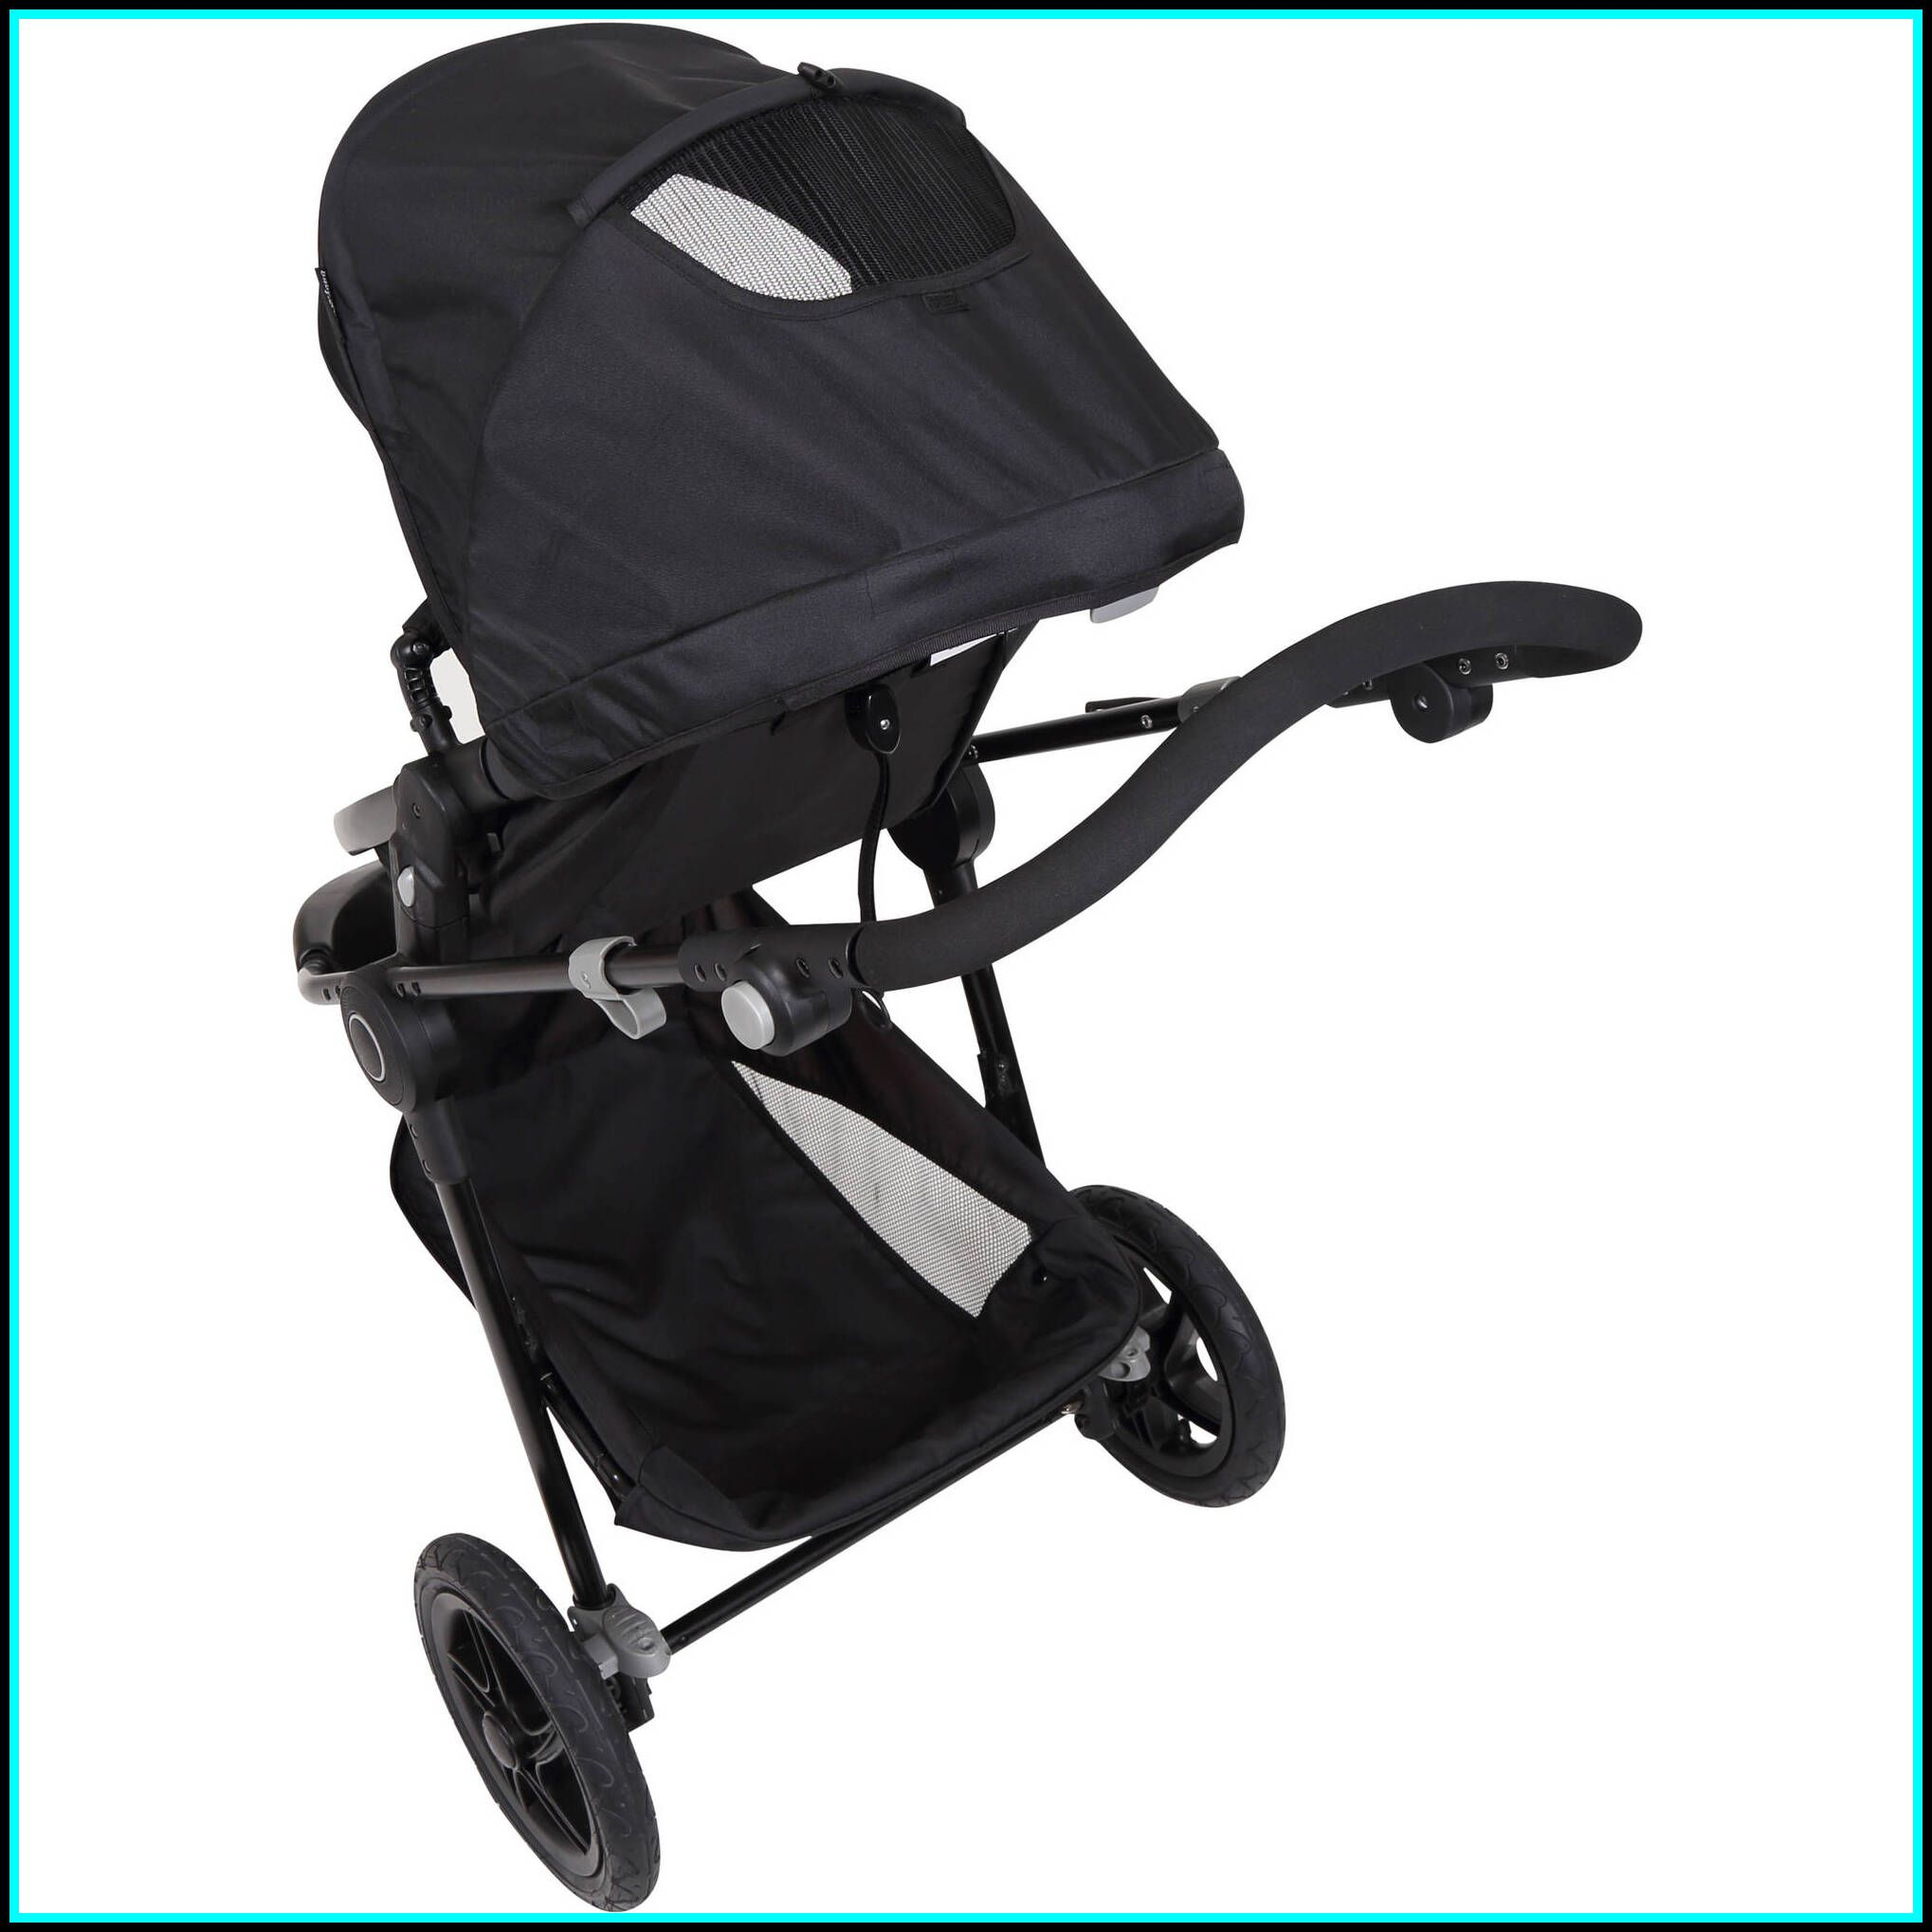 84 reference of baby trend stroller in 2020